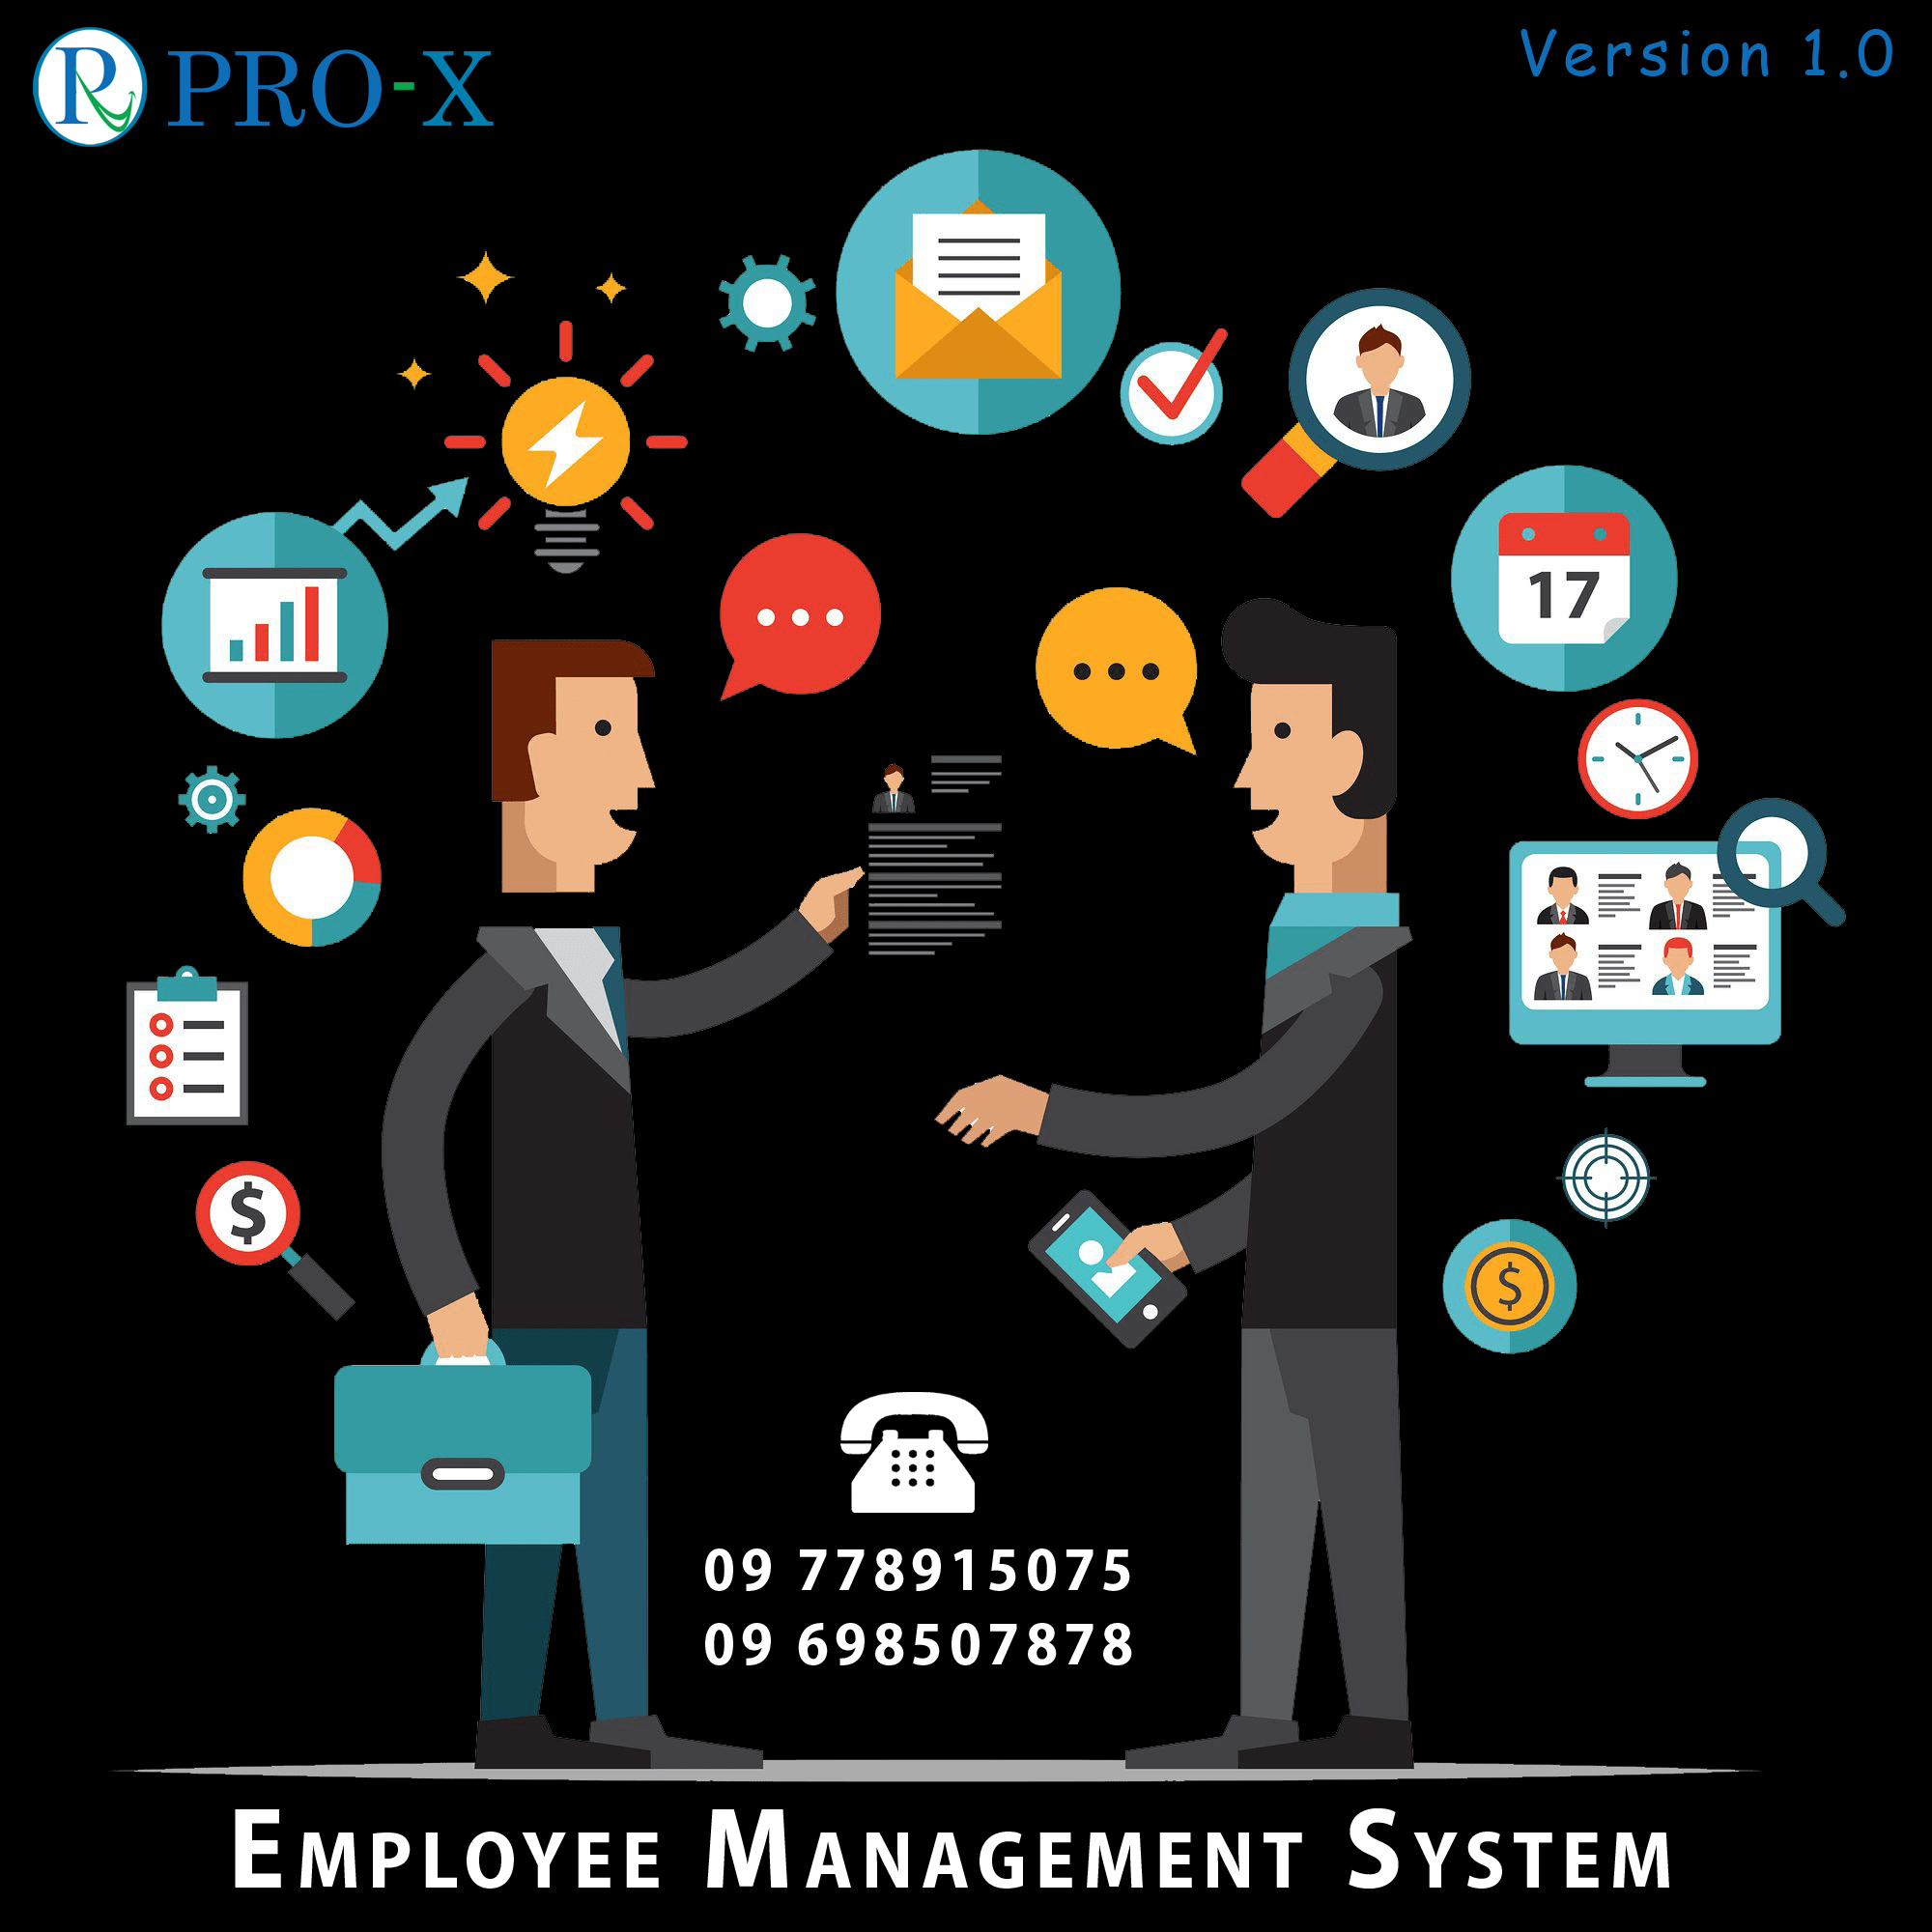 Employee Management System (Version 1.0)